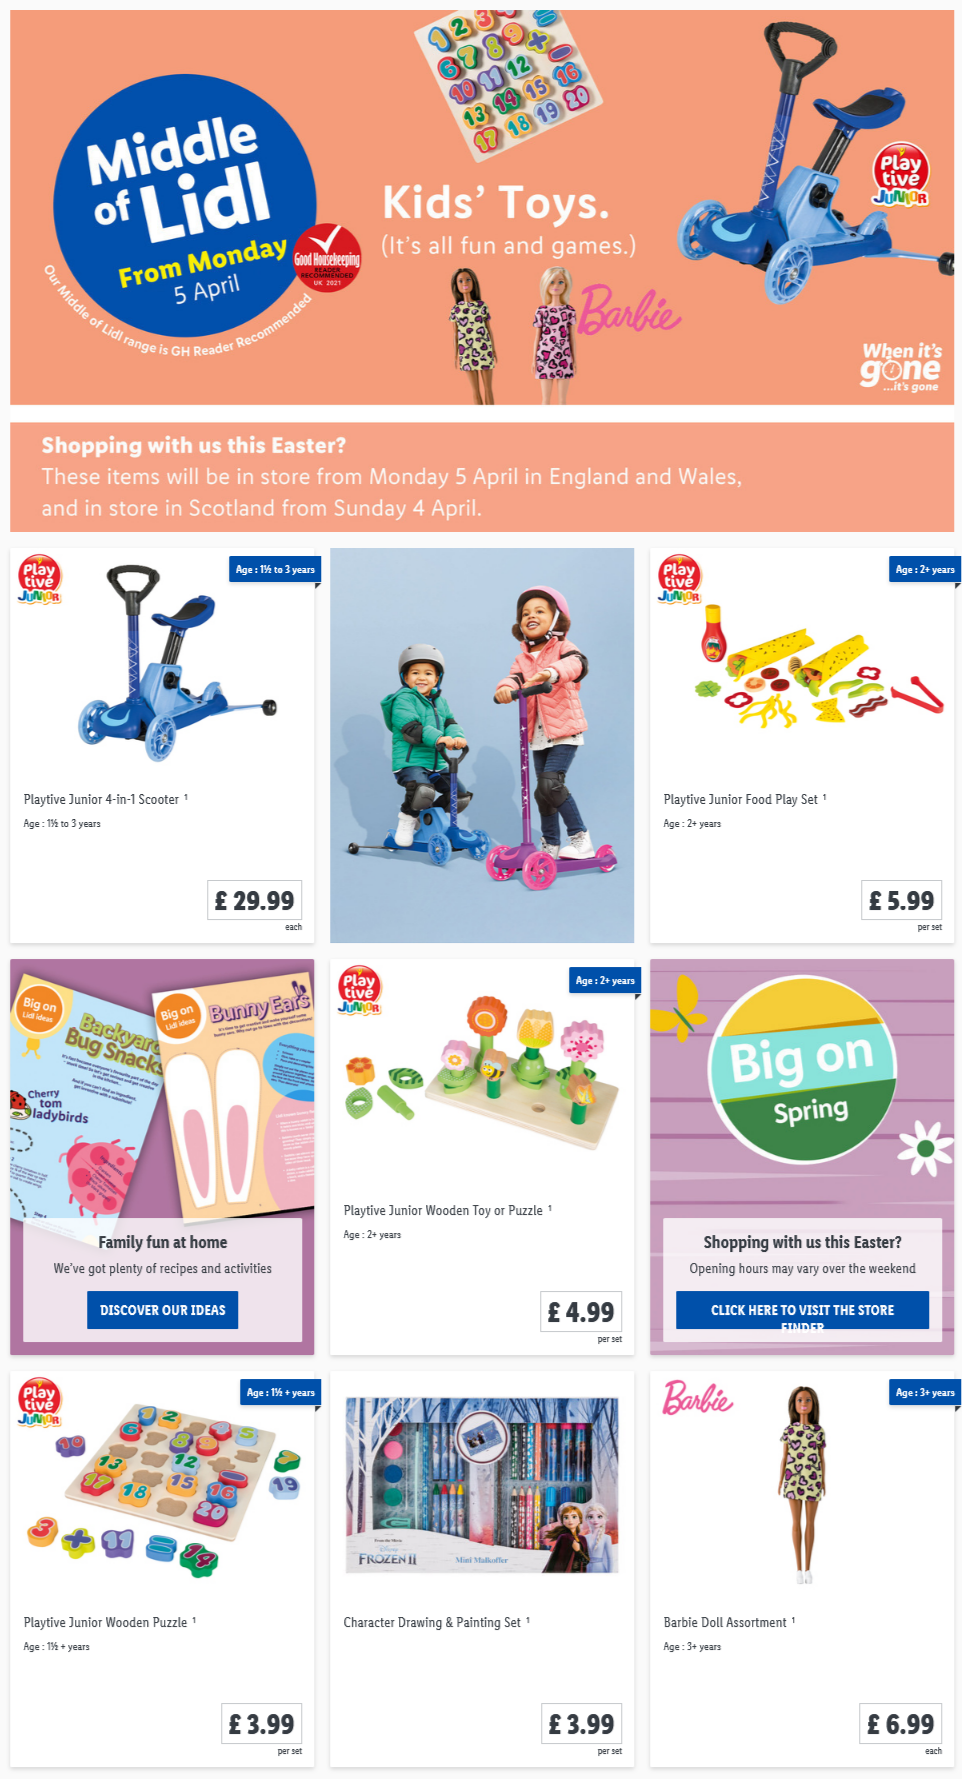 LiDL Kids Toys from 5th April 2021 LiDL Monday Offers